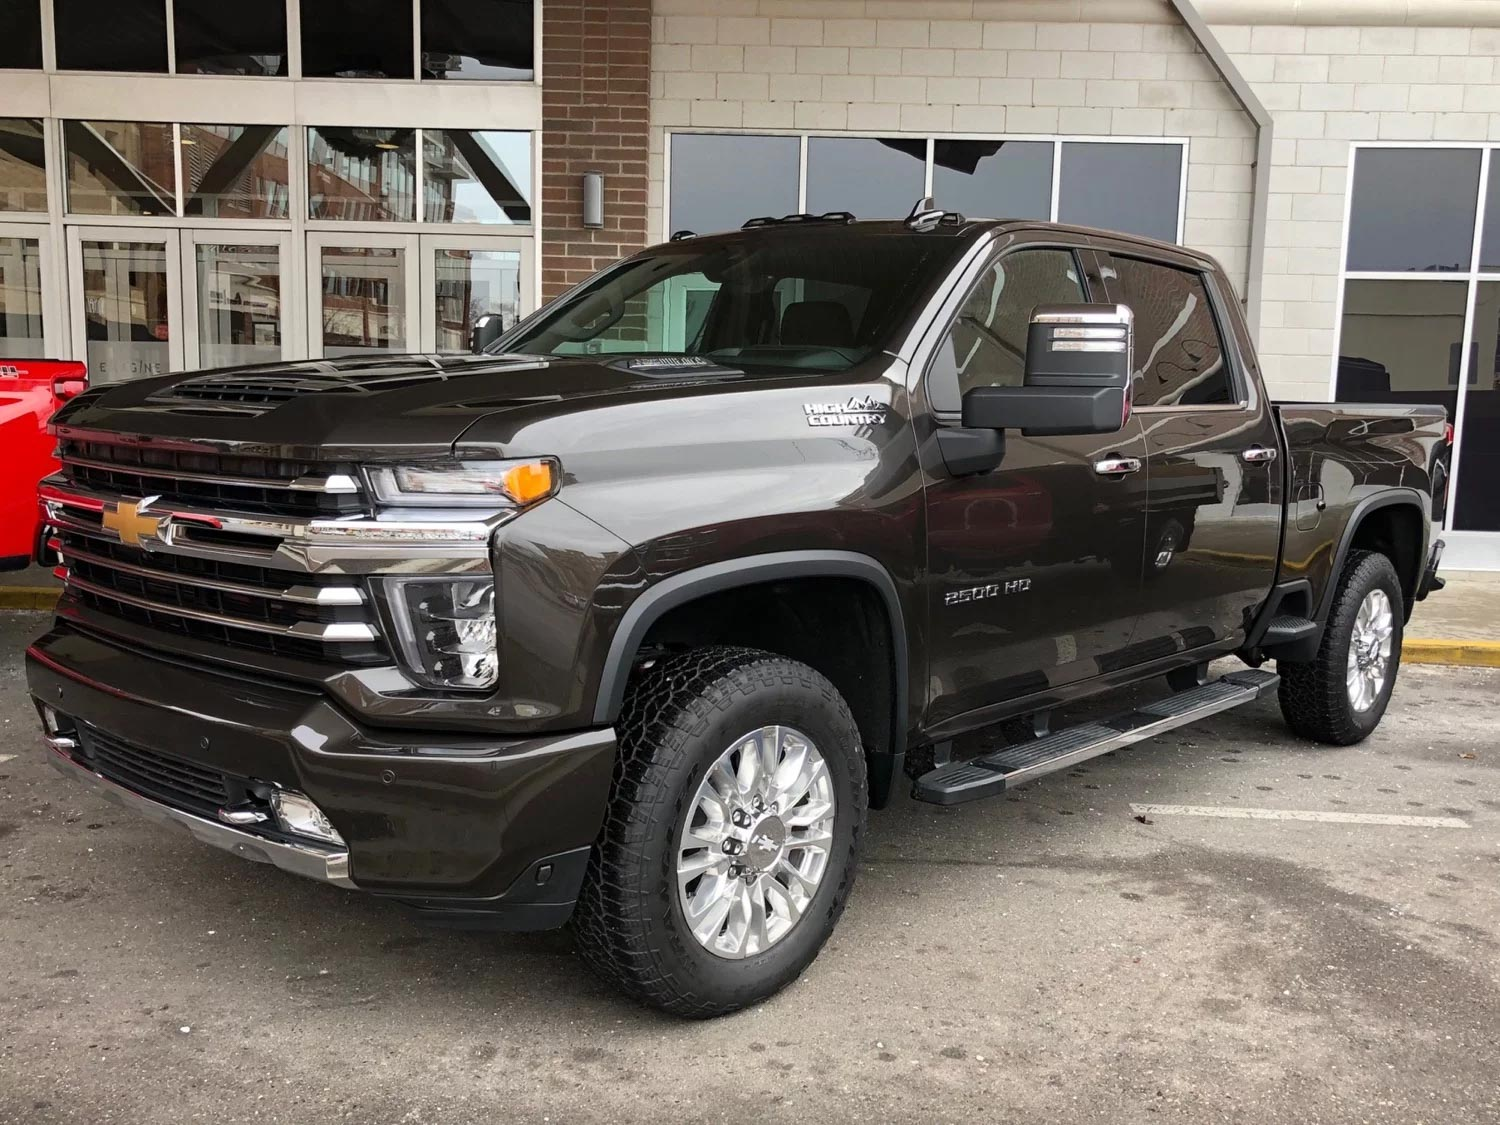 82 A 2020 Chevy Duramax Images